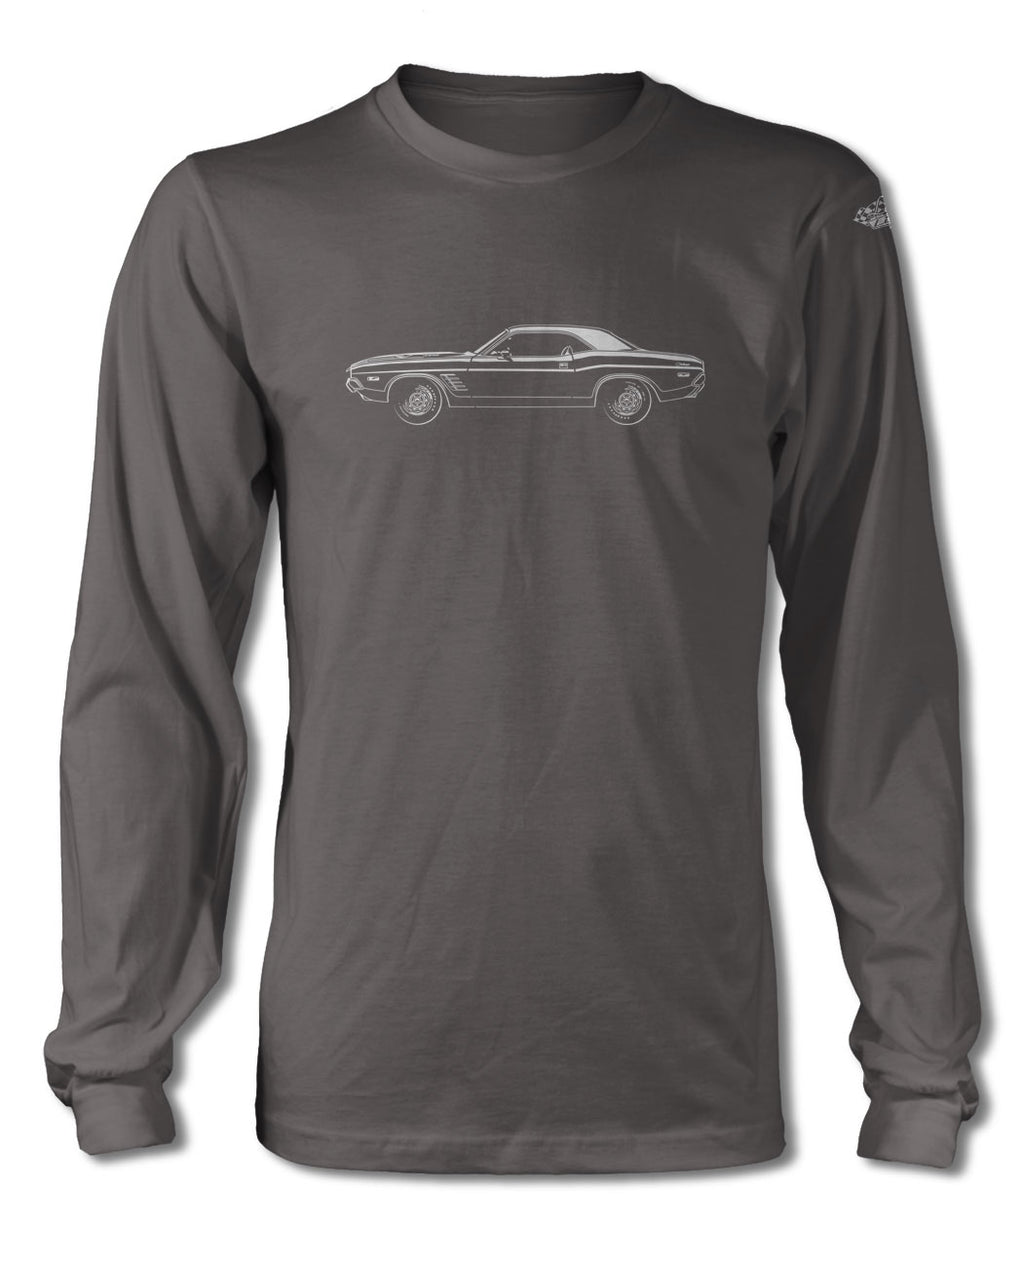 1972 Dodge Challenger Rallye Coupe T-Shirt - Long Sleeves - Side View